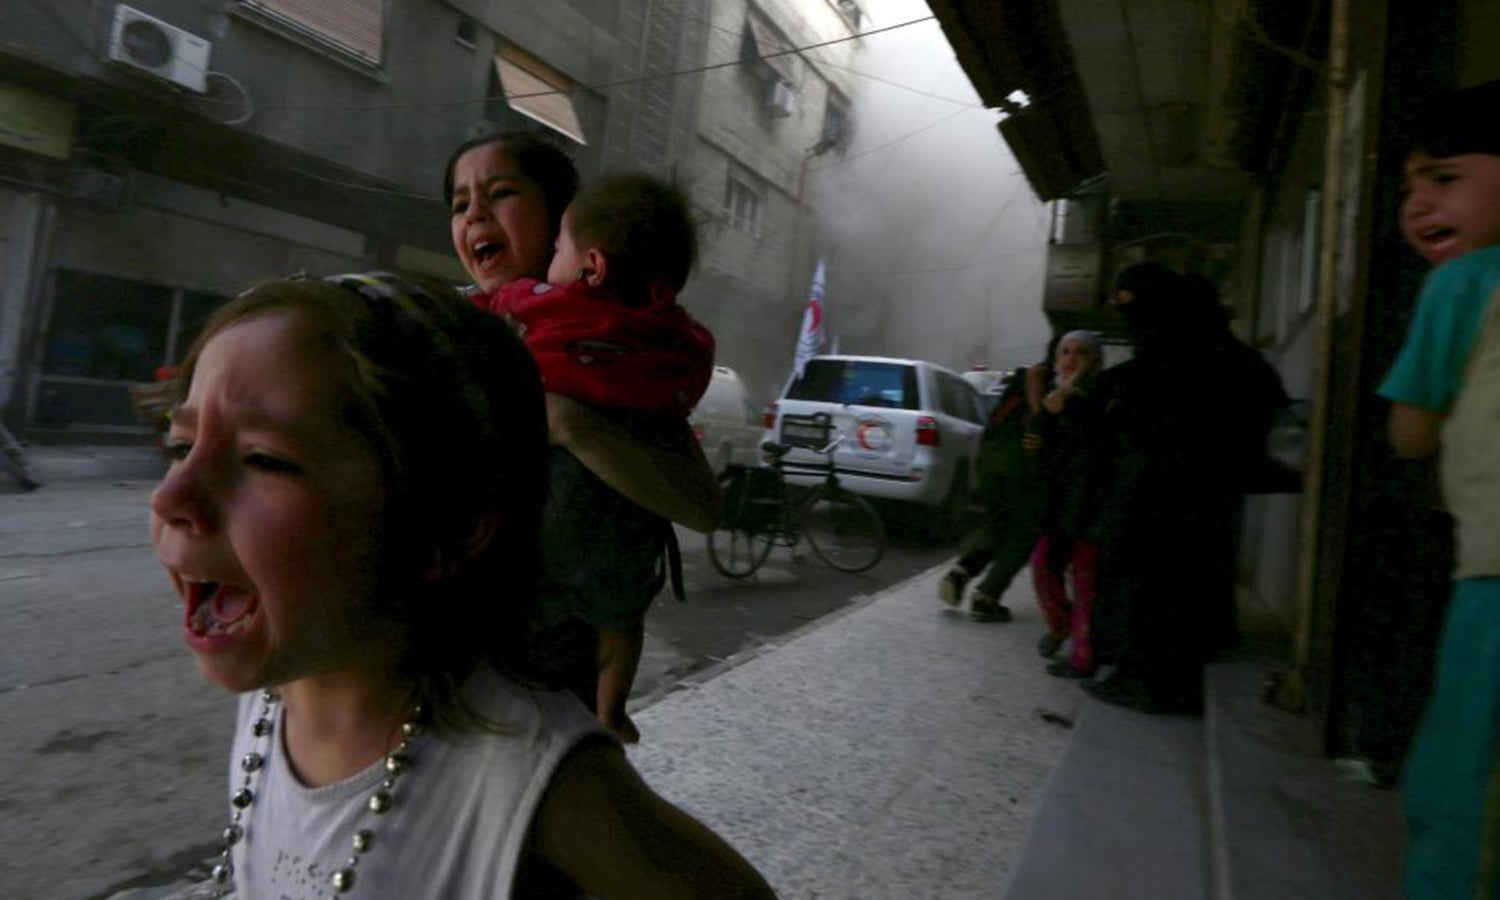 Children react after what activists said was shelling by forces loyal to Syria's President Bashar al-Assad near the Syrian Arab Red Crescent center in the Douma neighborhood of Damascus. — Reuters